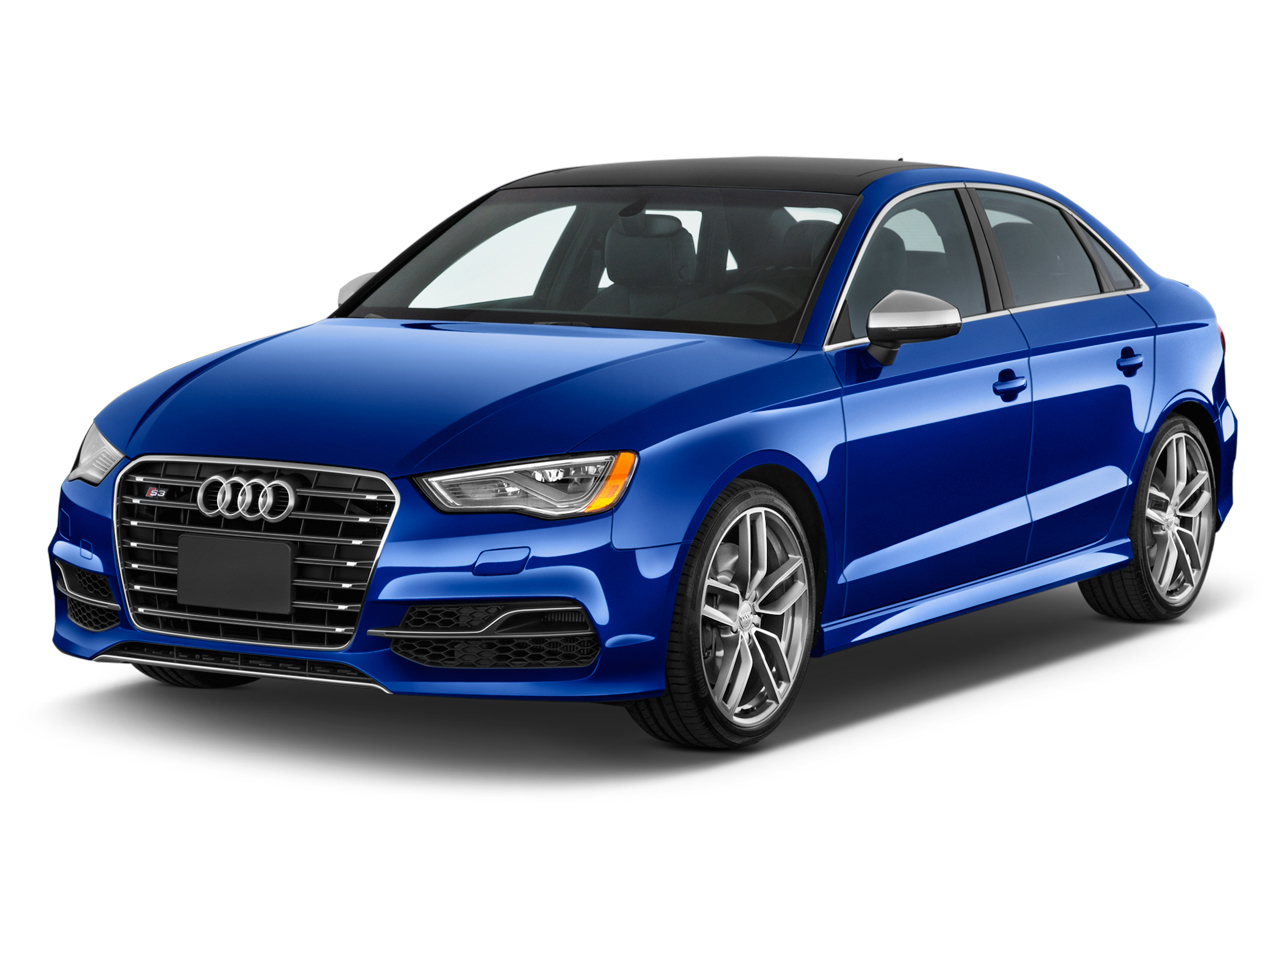 new and used audi s3 prices photos reviews specs the car connection. Black Bedroom Furniture Sets. Home Design Ideas